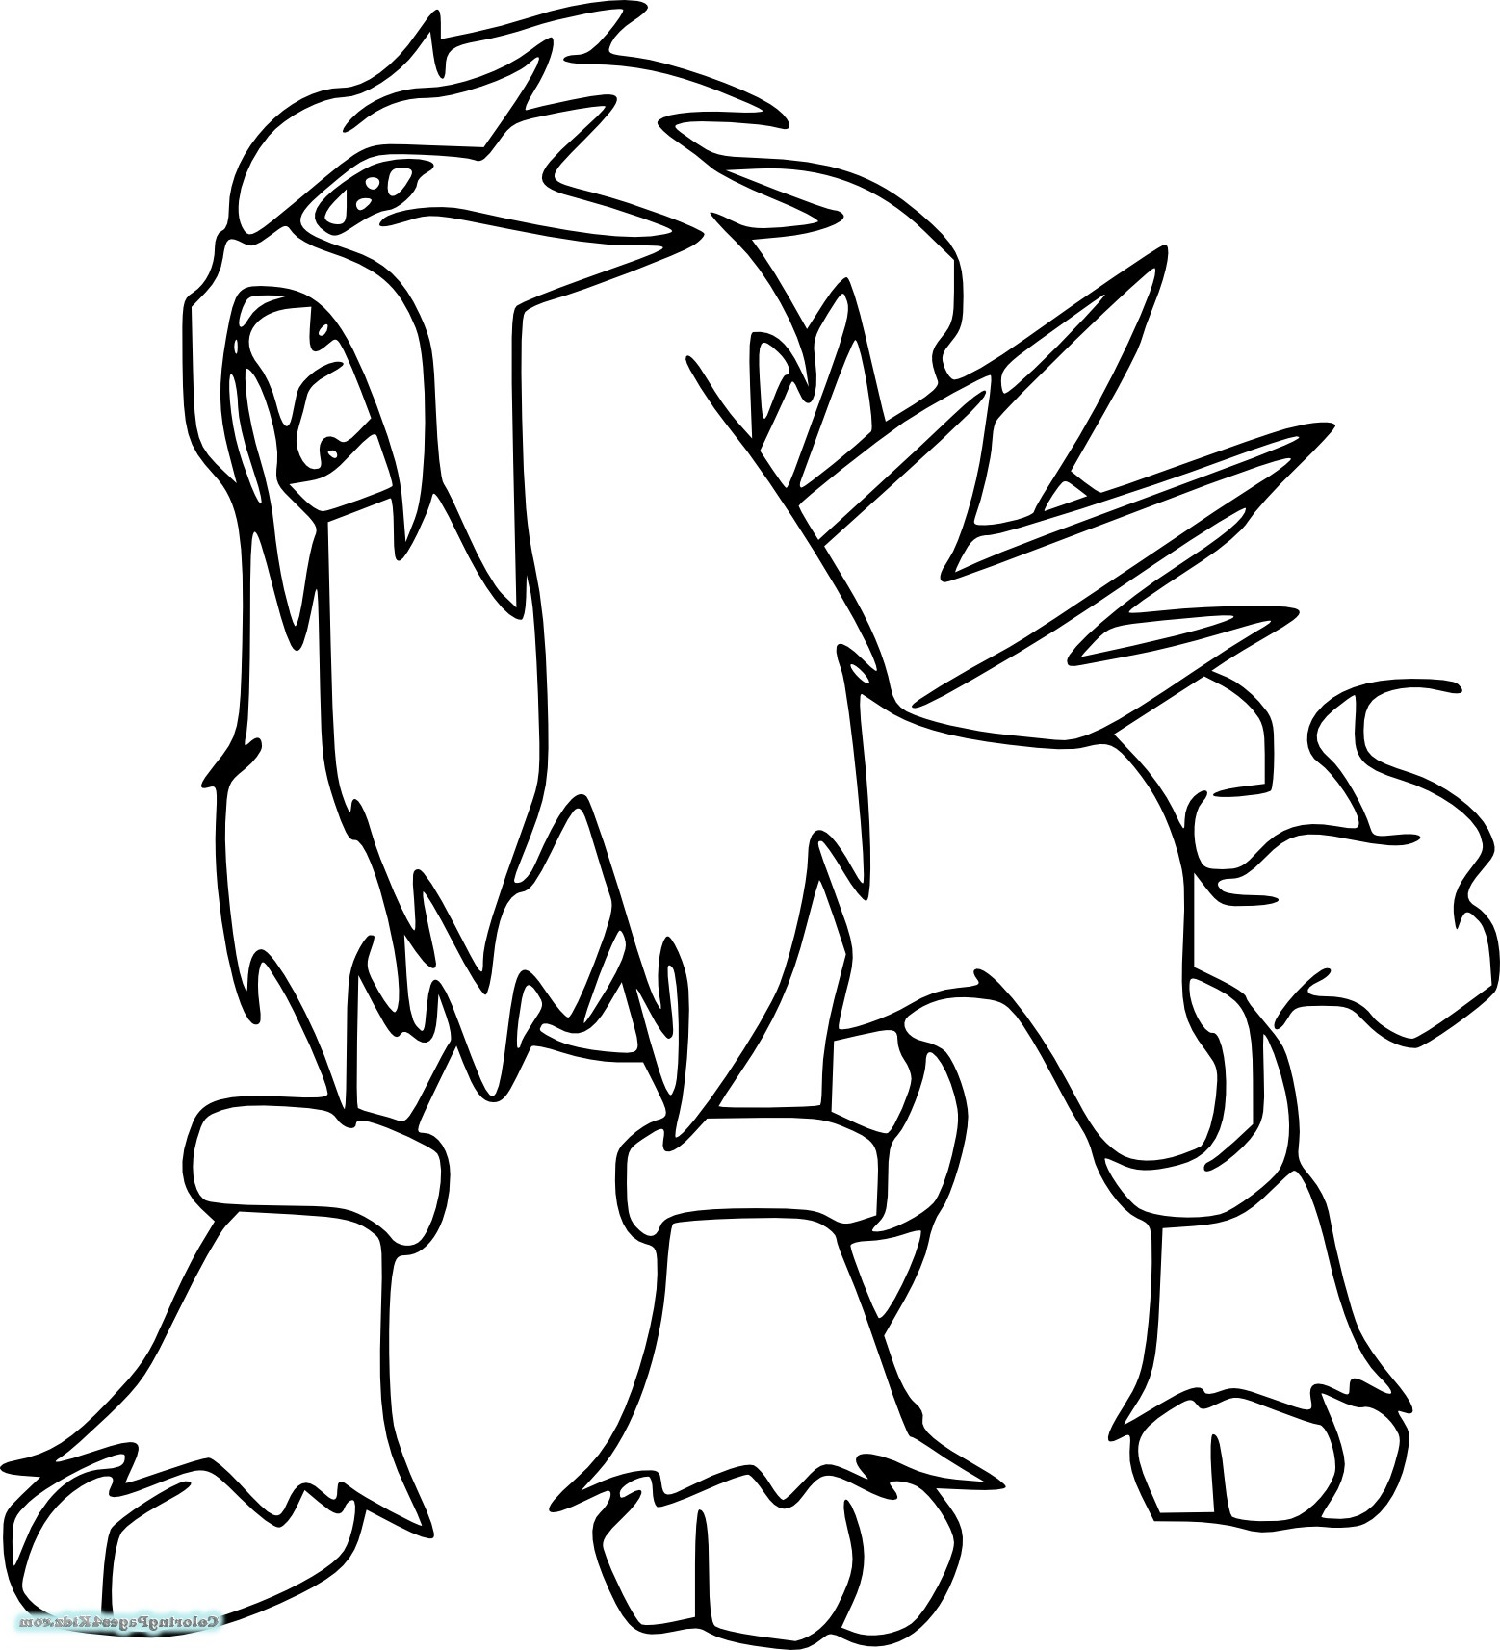 coloring pages pokemon legendary legendary pokemon coloring pages coloring home pokemon coloring pages legendary